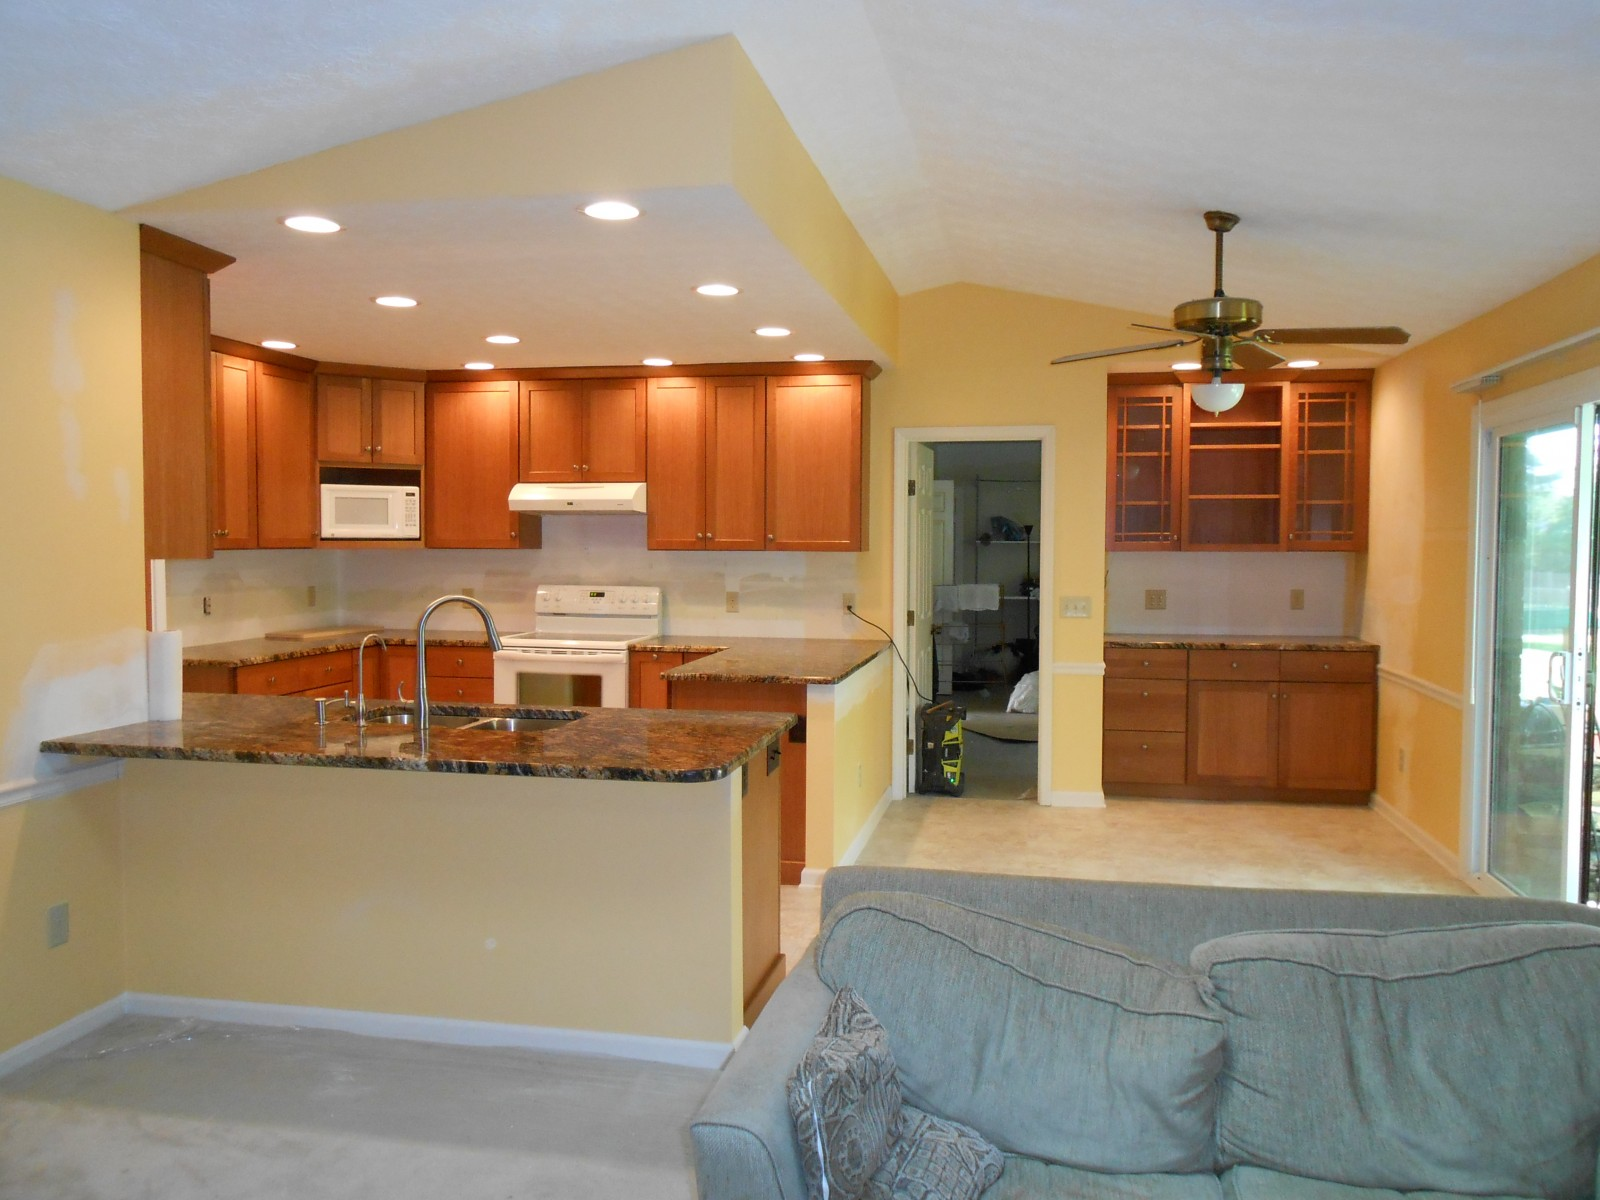 Washington Township Kitchen Remodel